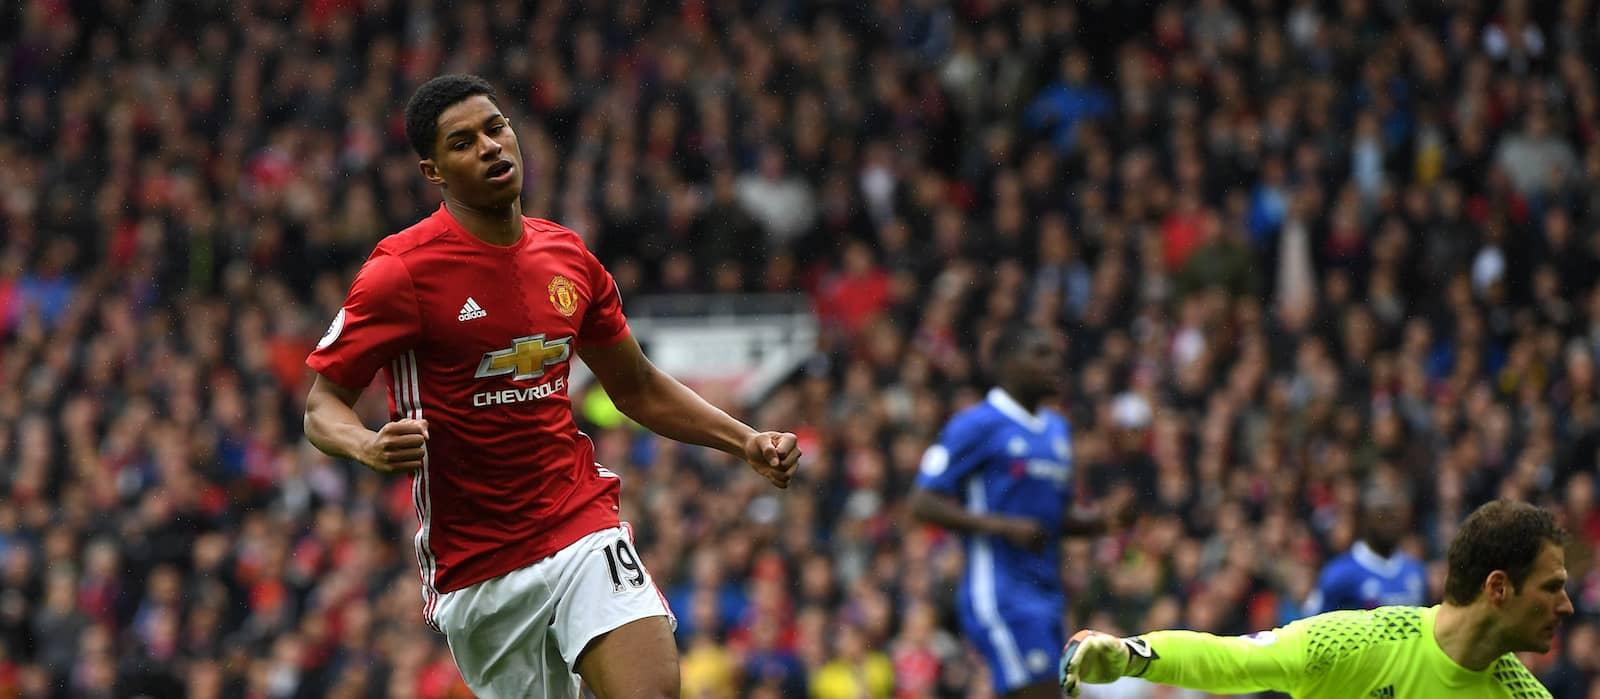 Manchester United vs Chelsea: Potential XI with Marcus Rashford up front